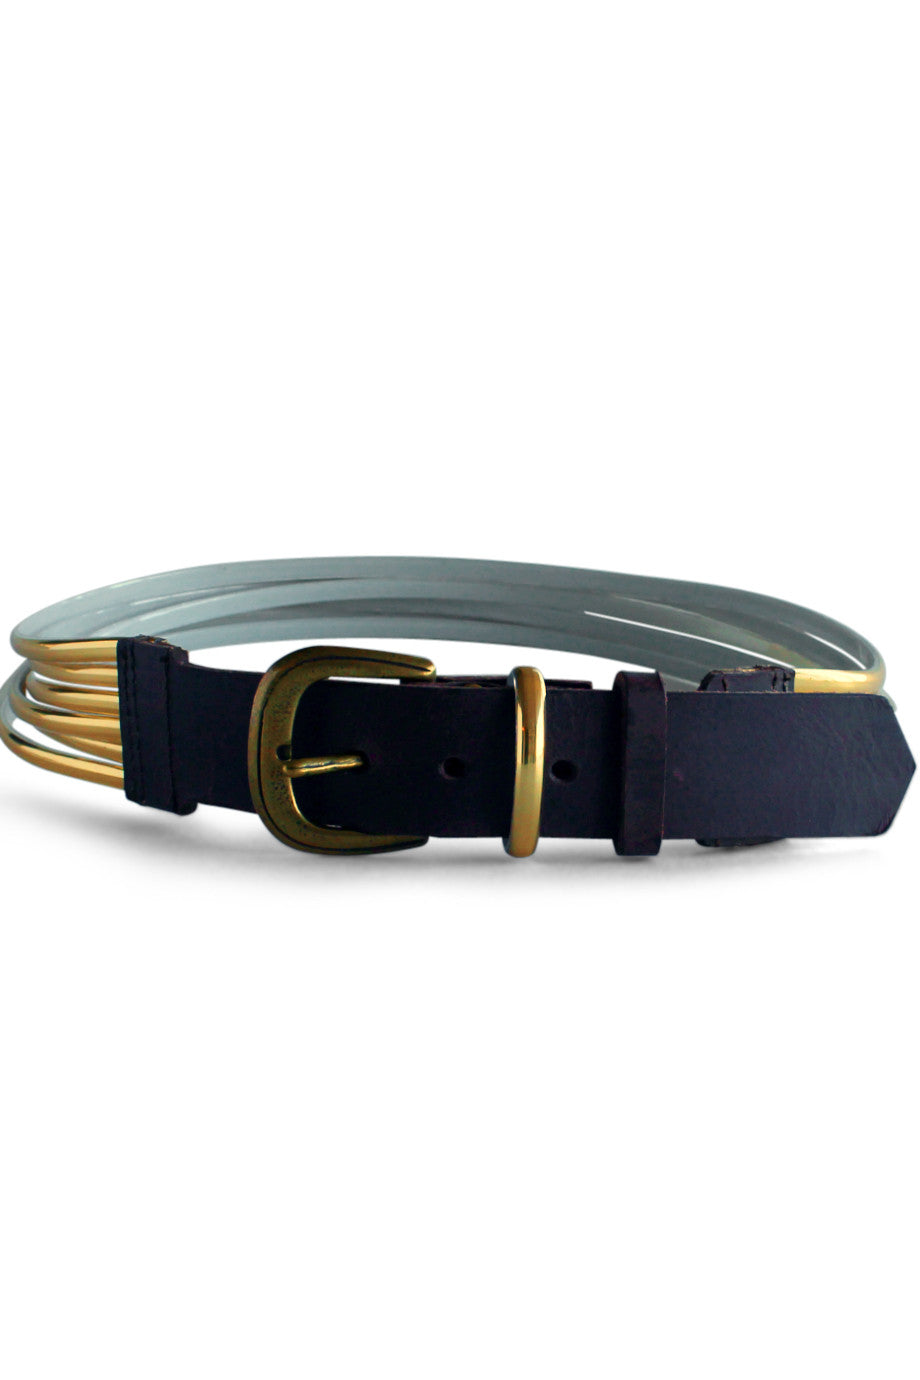 Gold Ndebele Belt